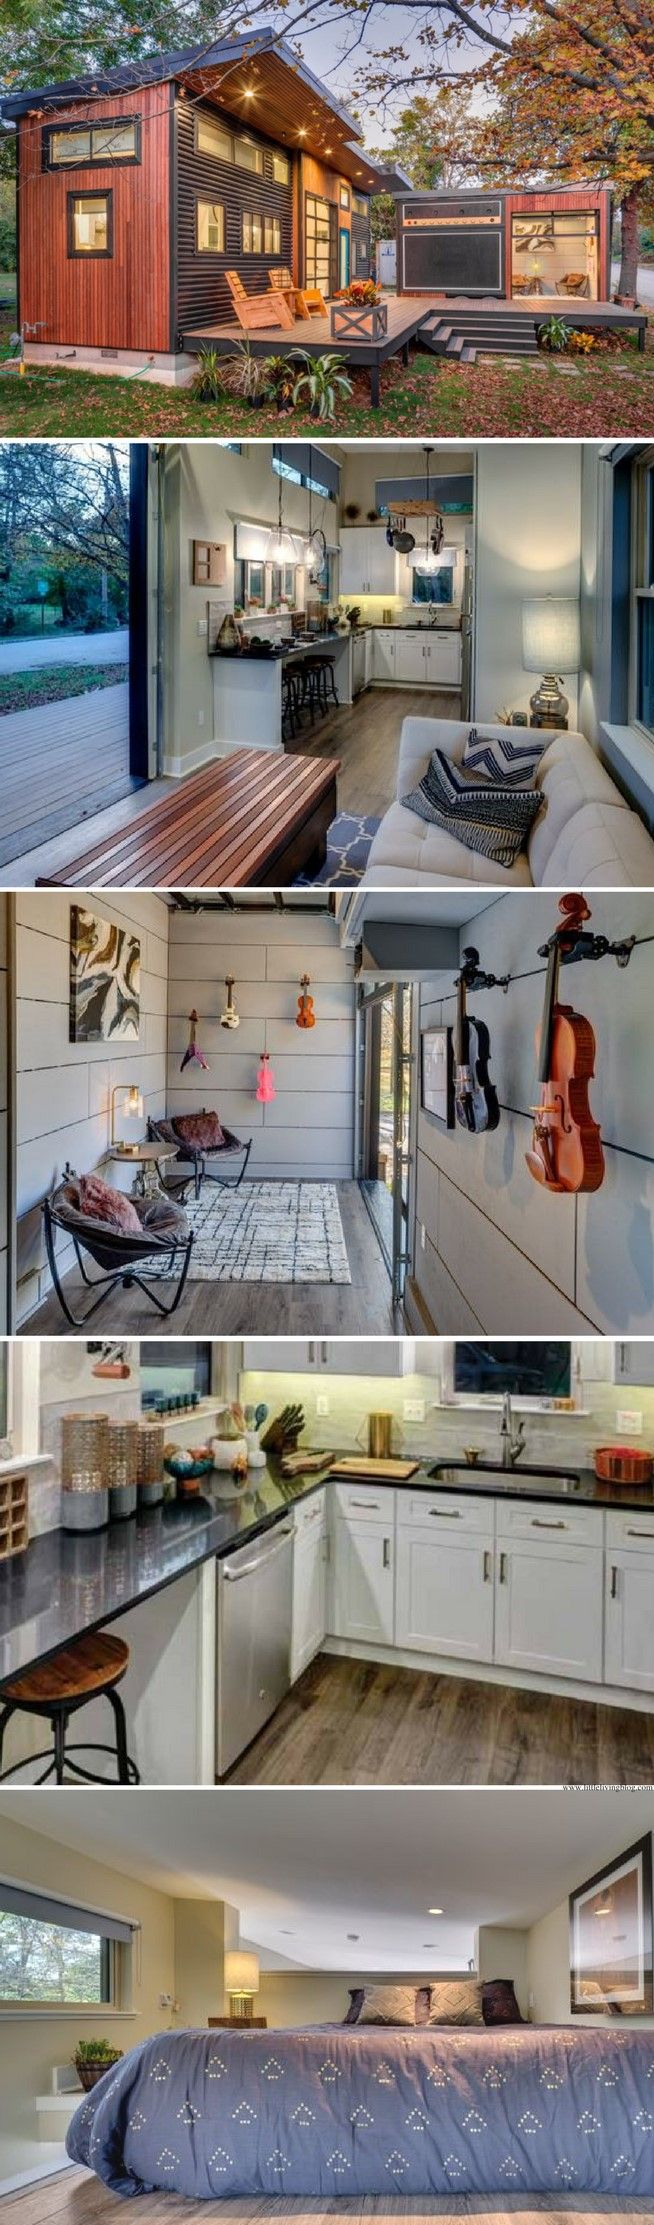 Container House - The Amplified Tiny House (520 sq ft) - Who Else Wants Simple Step-By-Step Plans To Design And Build A Container Home From Scratch?